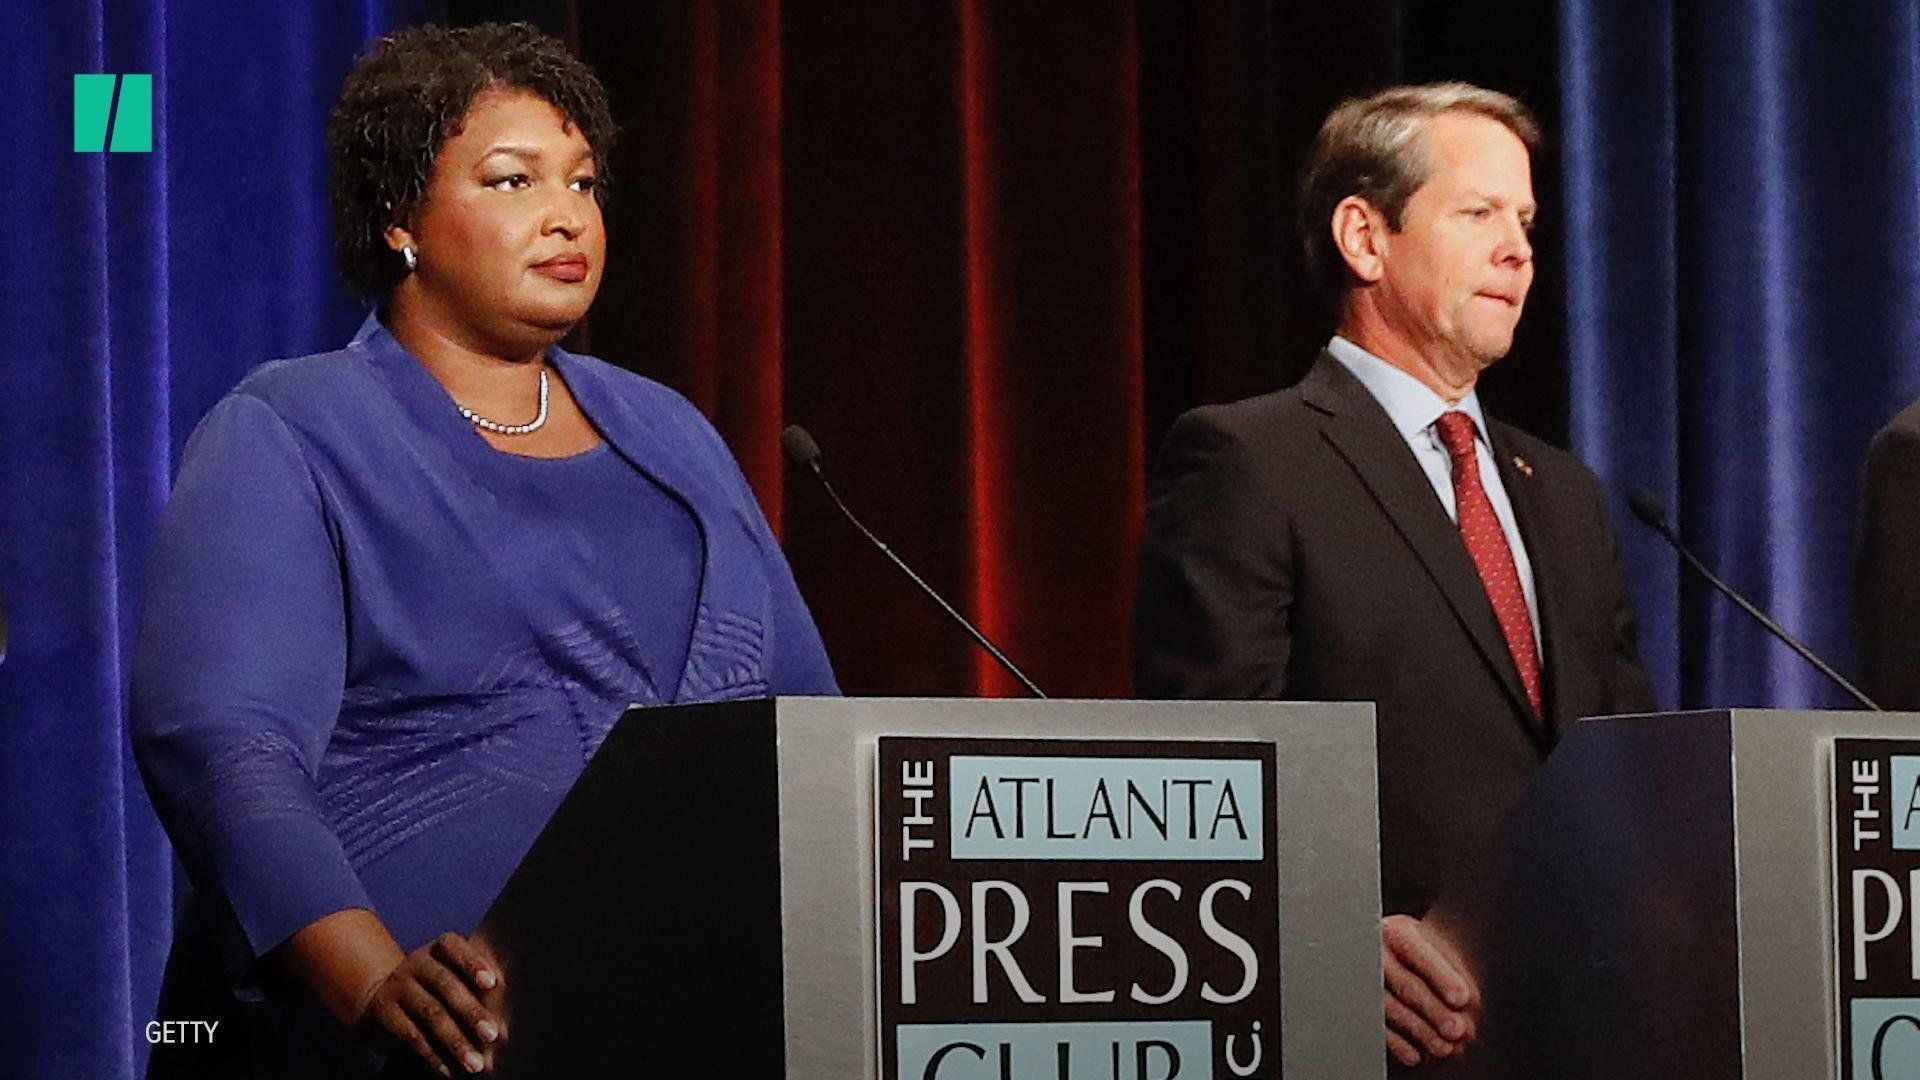 Georgia's Brian Kemp Accuses Democrats Of 'Potential Cyber Crimes' Ahead Of Election